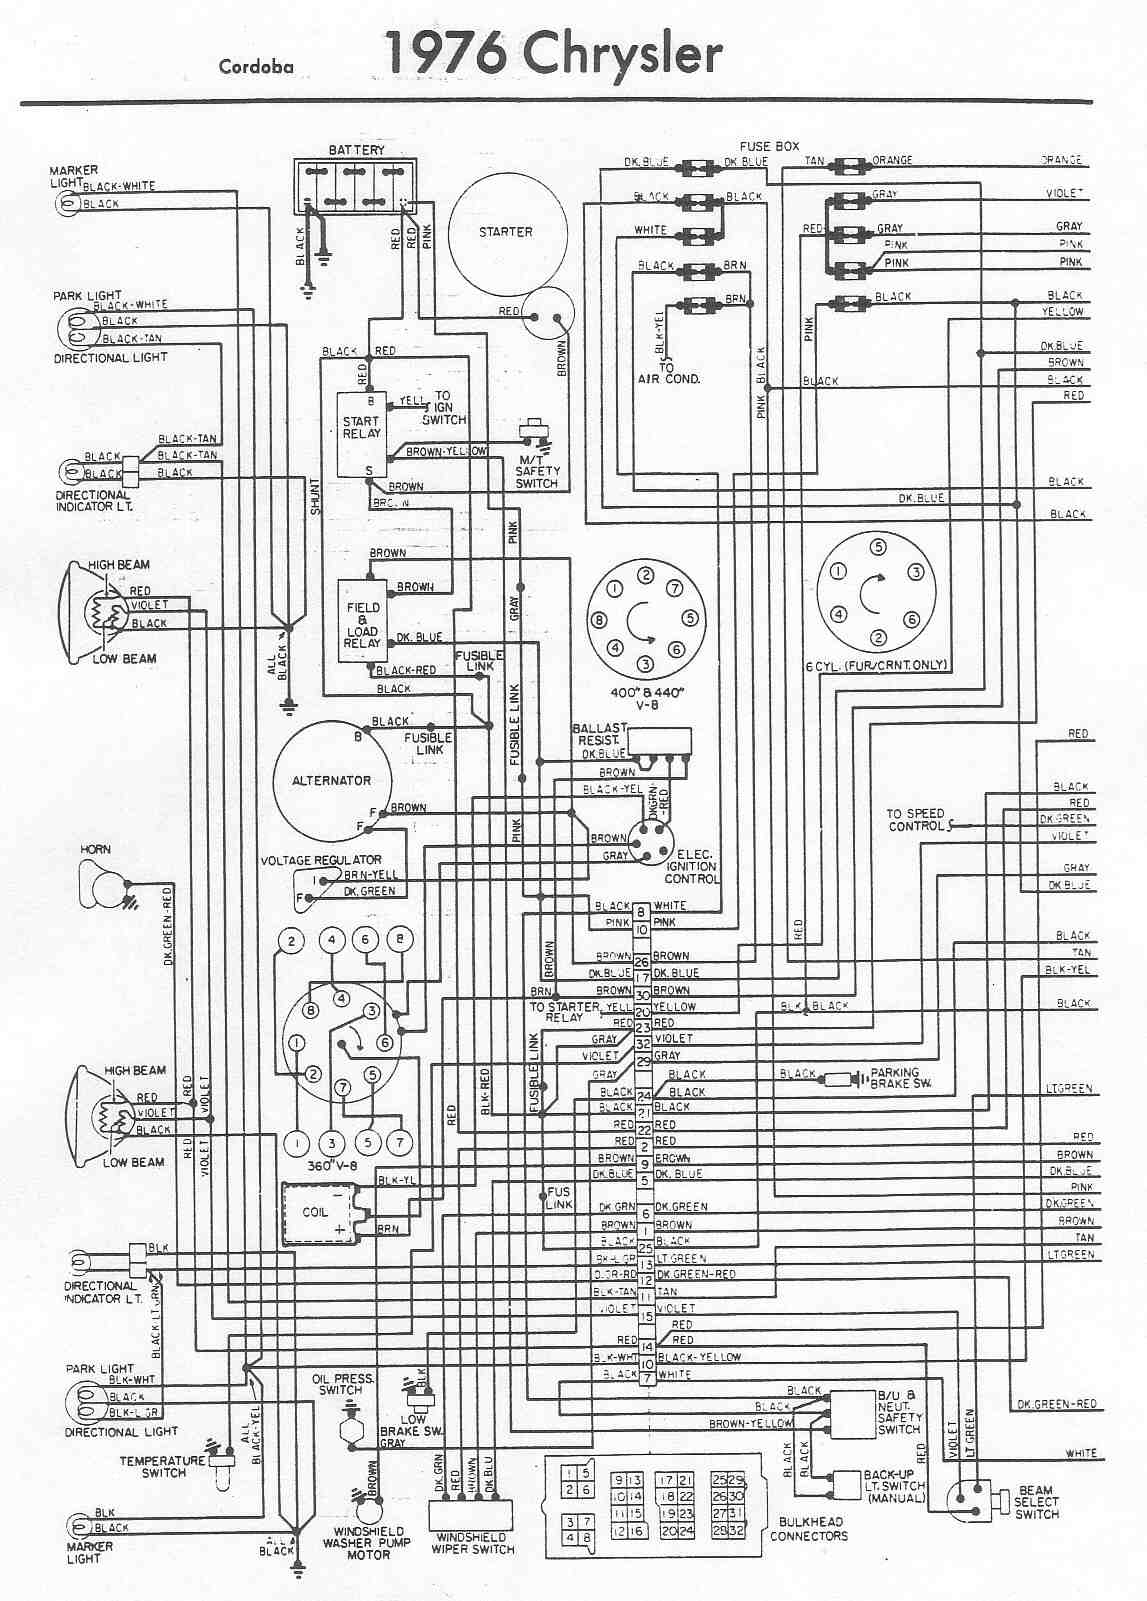 chrysler new yorker wiring diagram wiring library 1999 e250 fuse panel diagram 1954 chrysler new yorker [ 1147 x 1601 Pixel ]